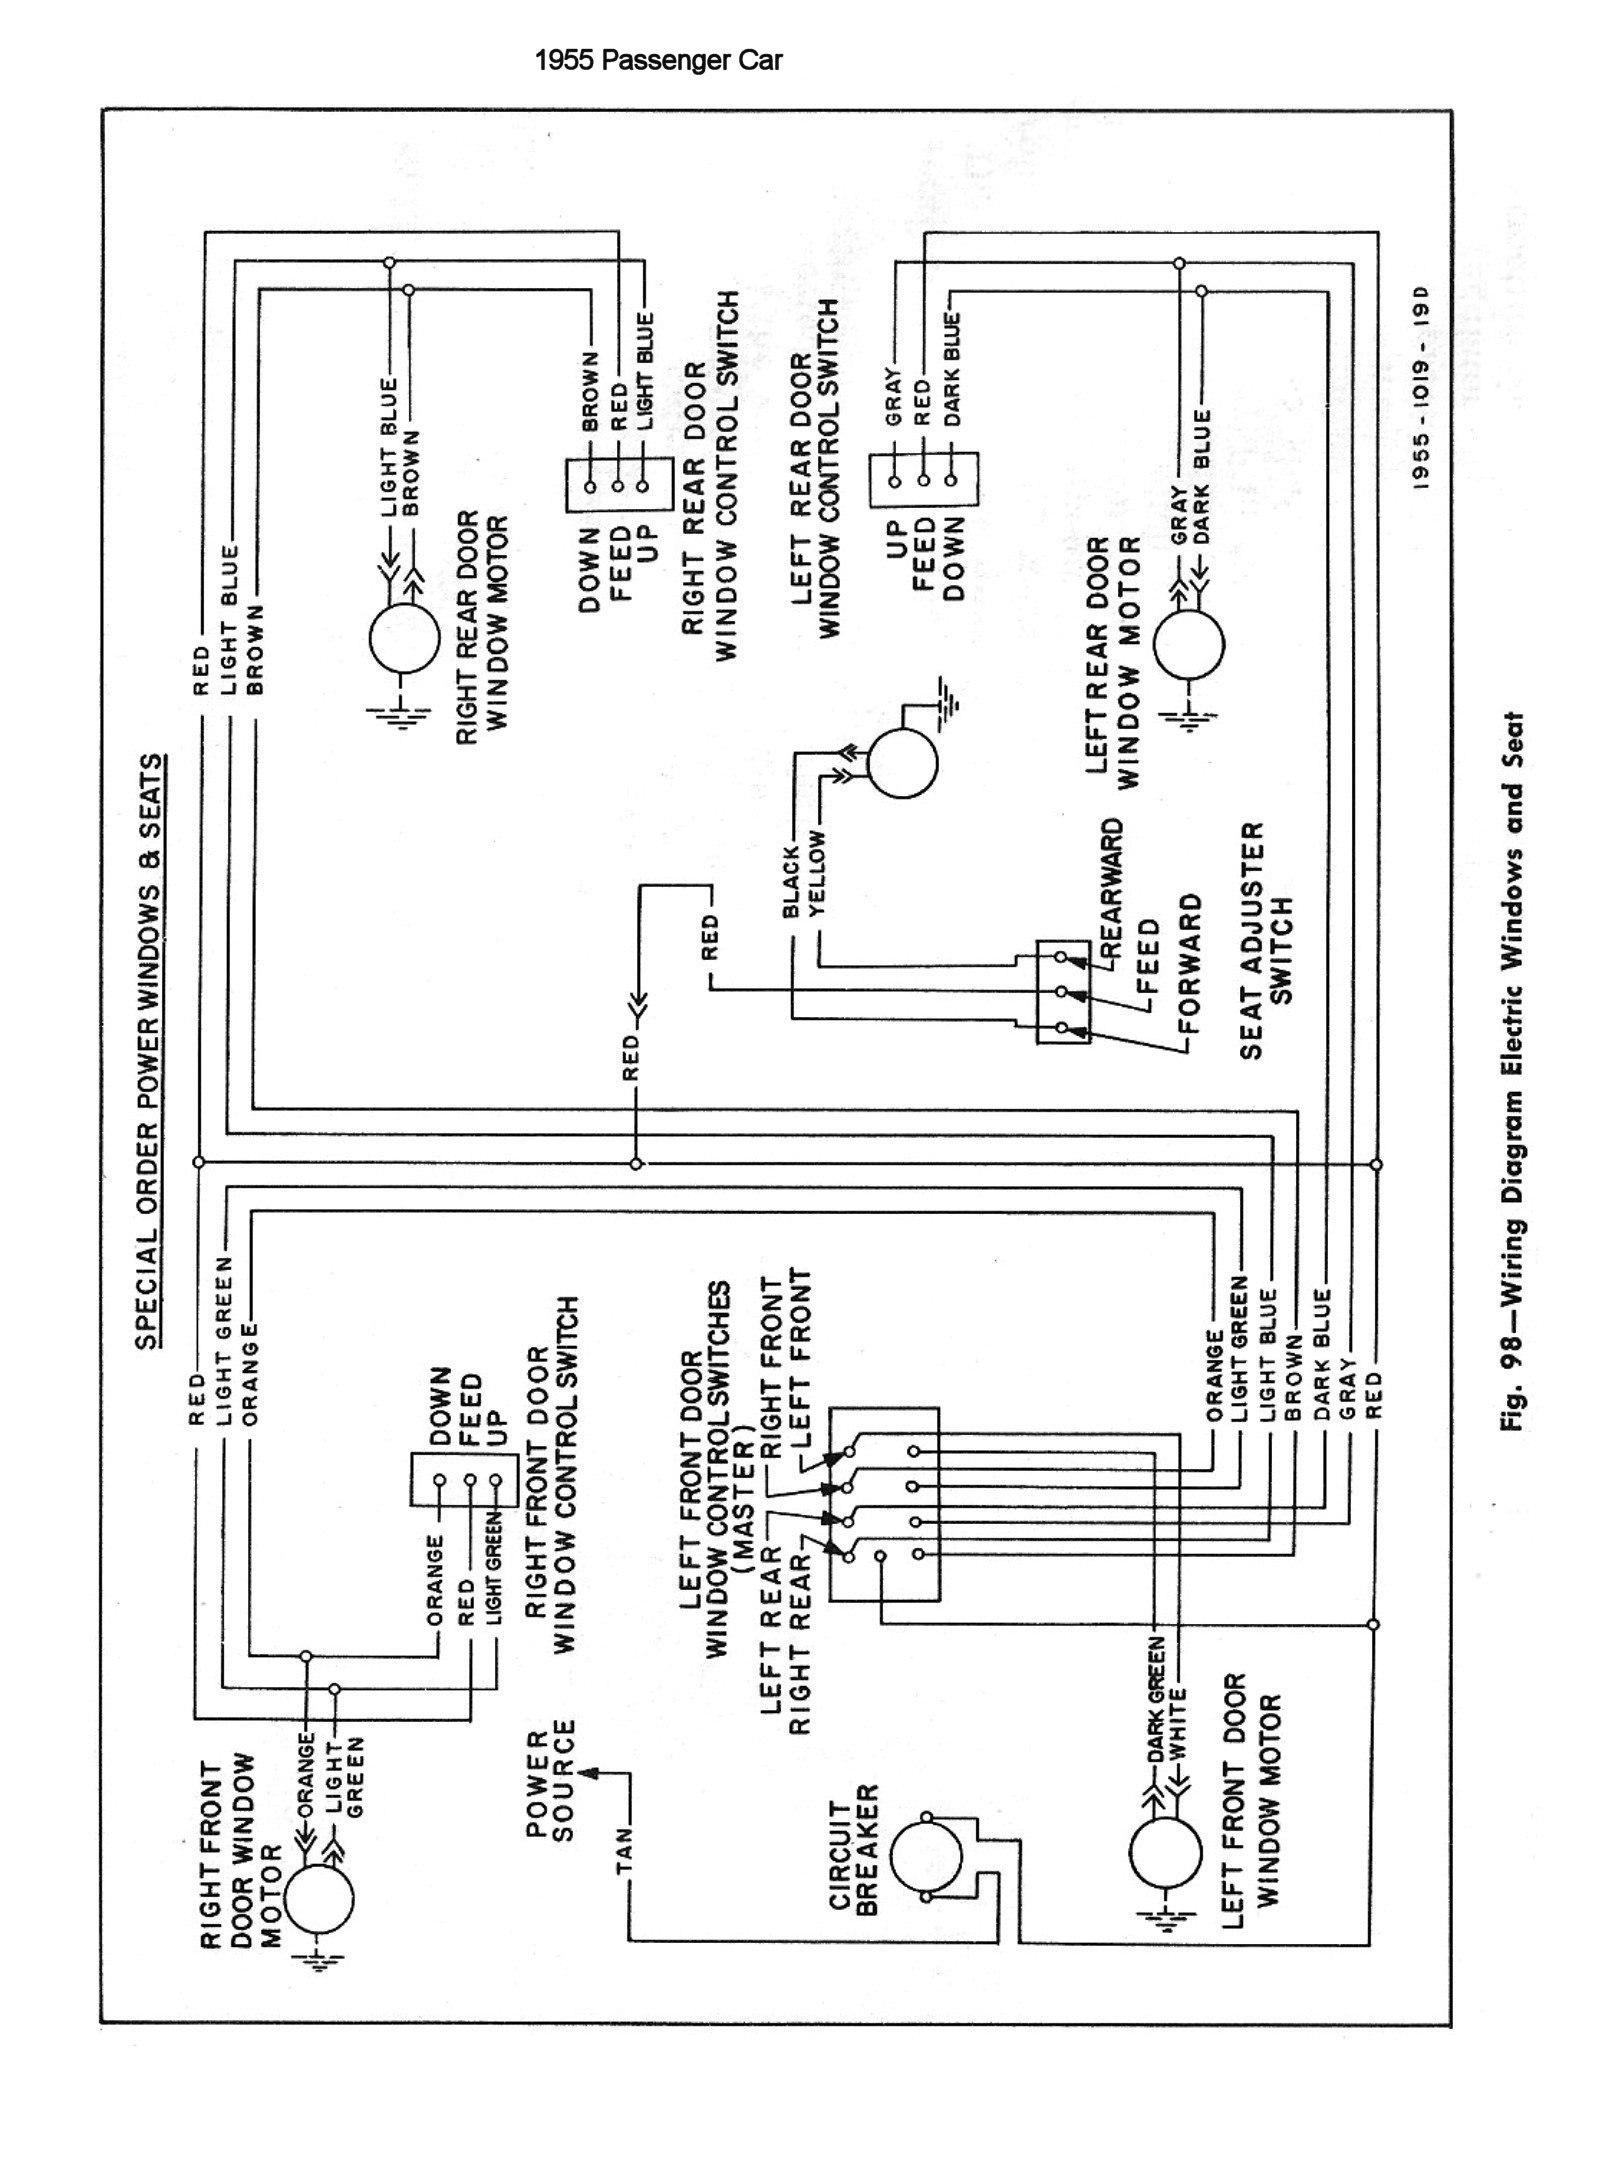 hight resolution of 56 chevy tail light wiring wiring diagram article review1955 chevy tail light wiring harness wiring diagram